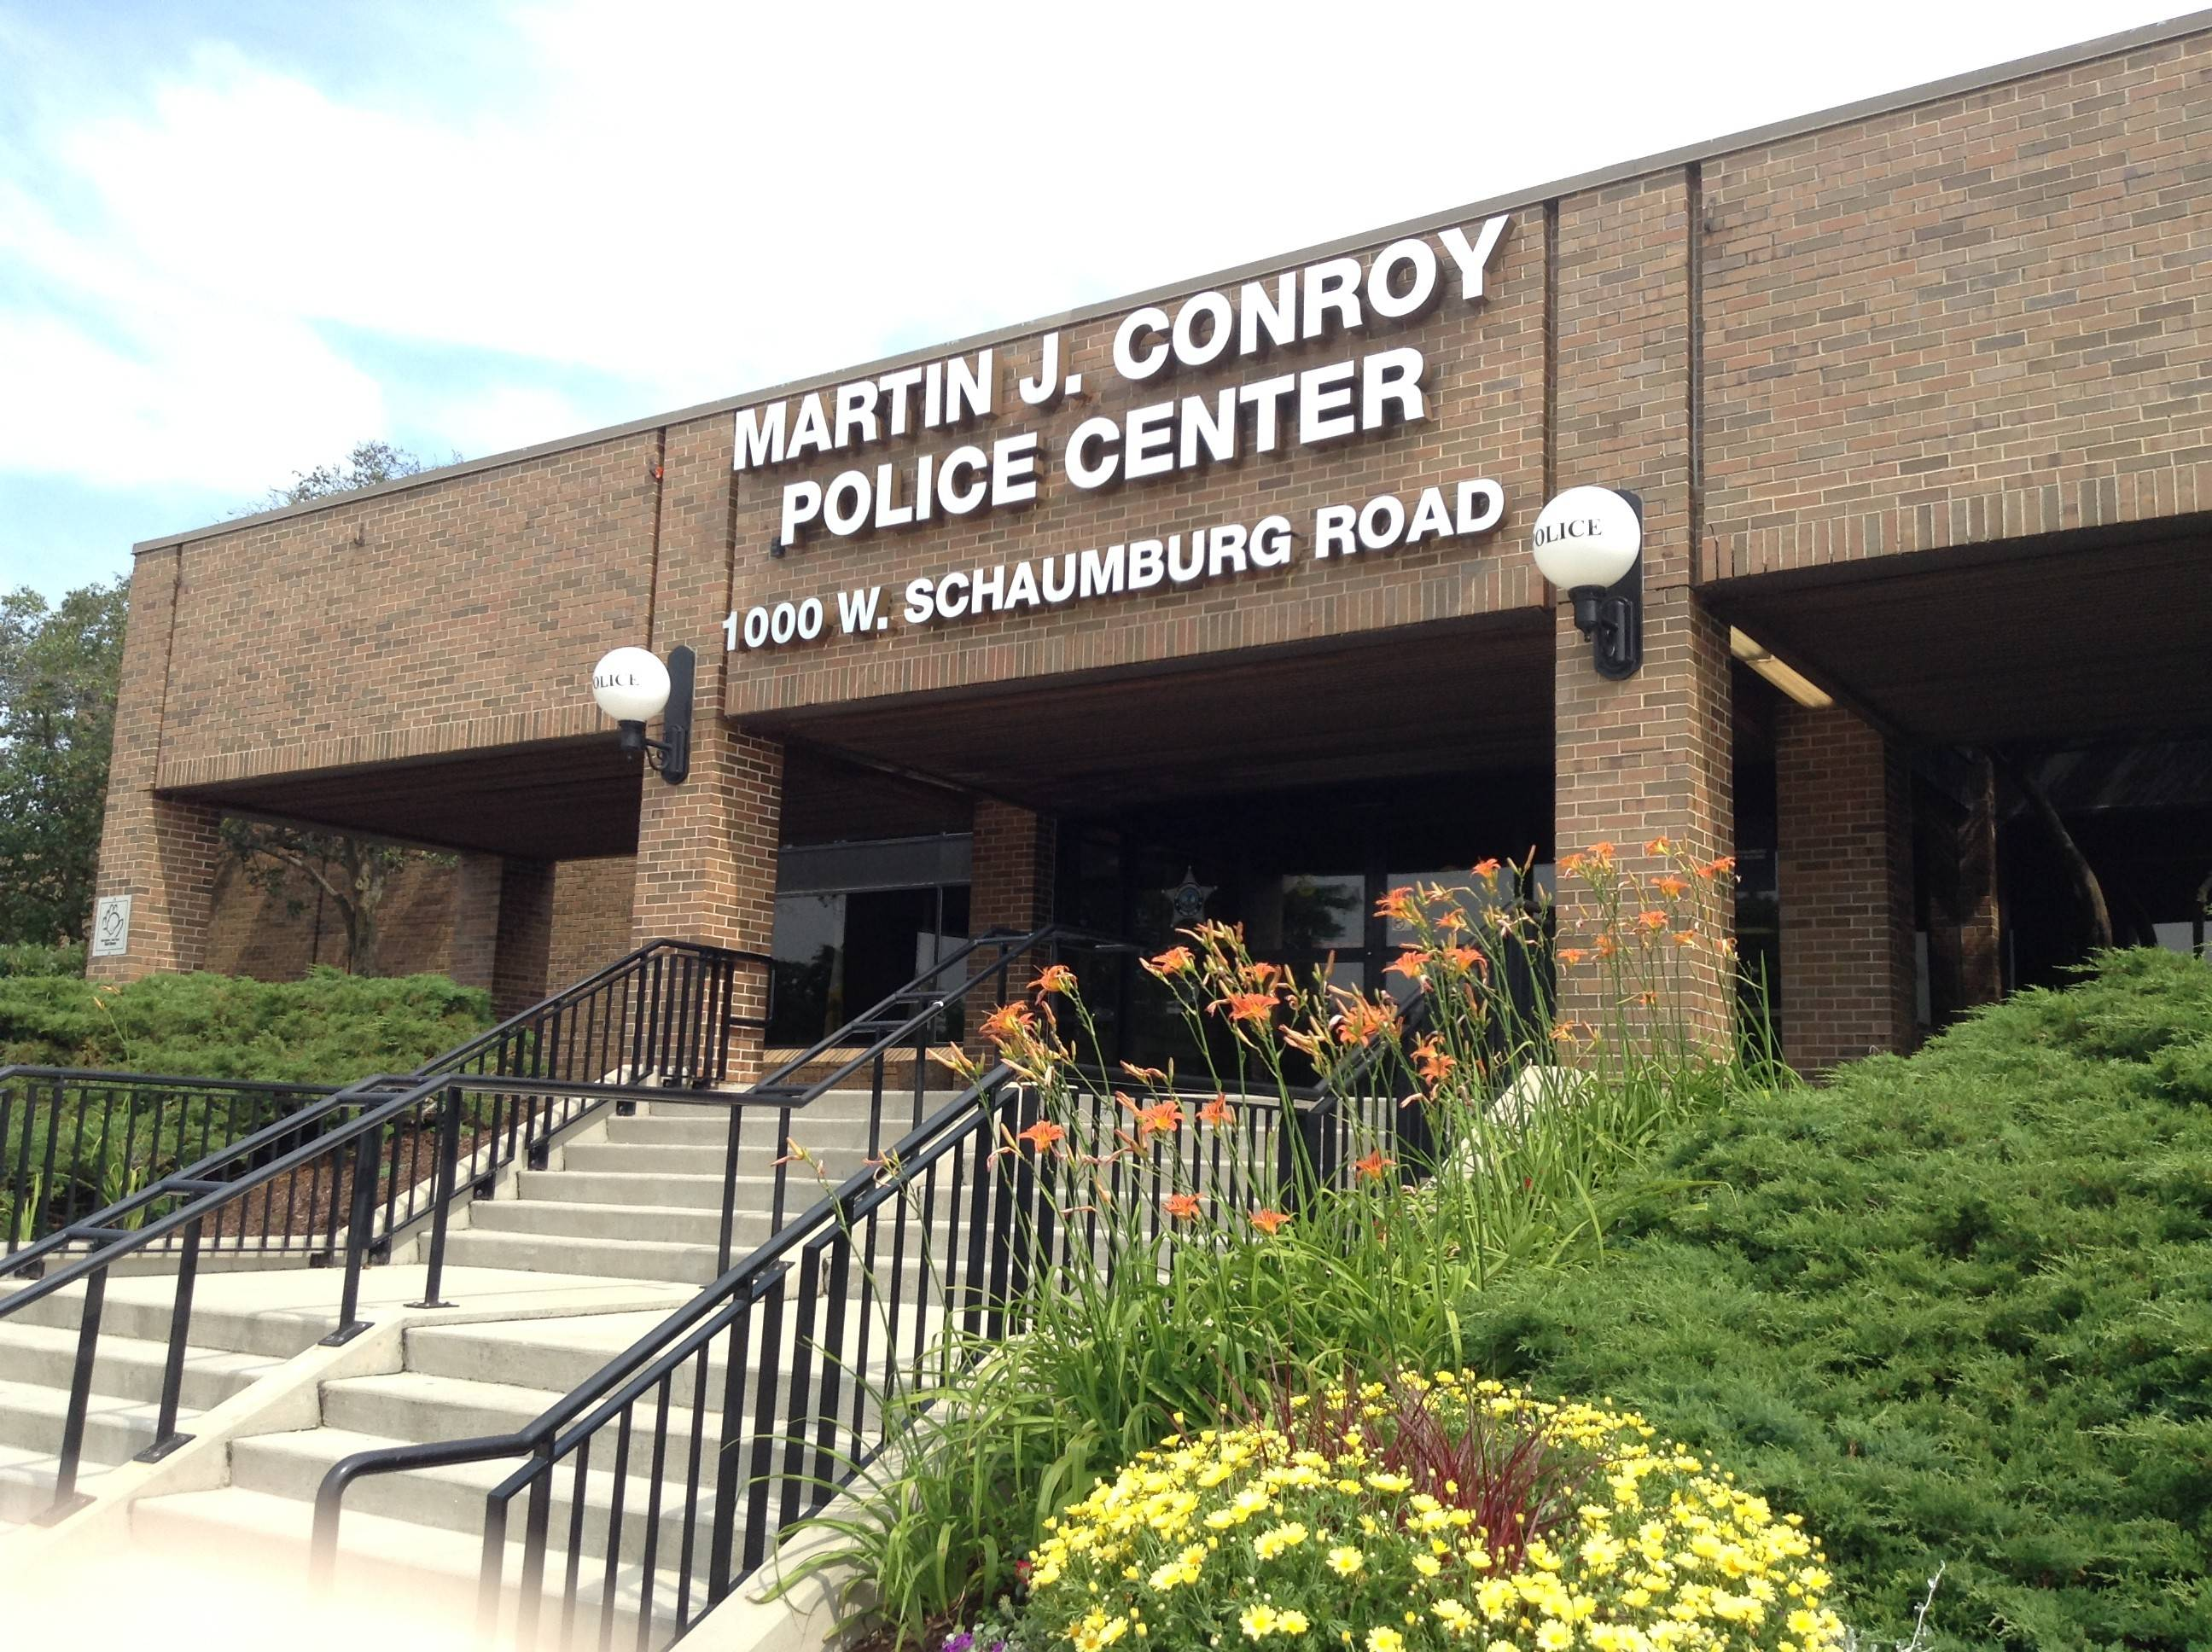 Schaumburg trustees approved a new three-year contract with the village's police lieutenants and sergeants Tuesday, increasing salaries by 2 percent, 2.25 percent and 2.5 percent each year.